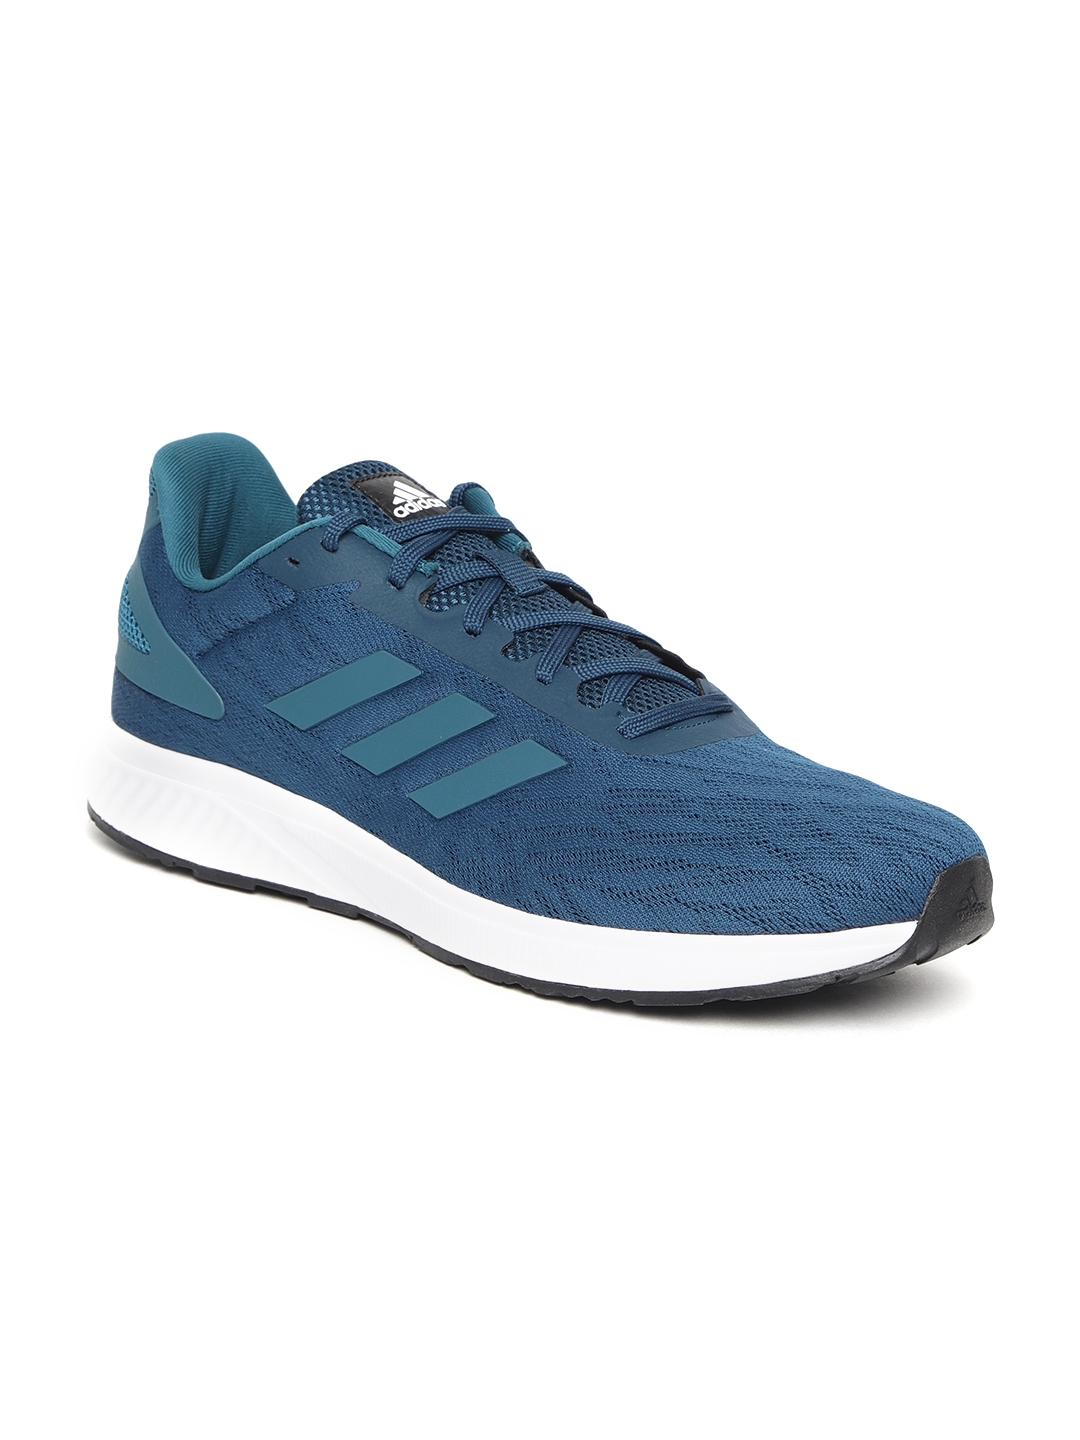 Buy ADIDAS Men Teal Blue KALUS Running Shoes - Sports Shoes for Men ... 169b3c34a